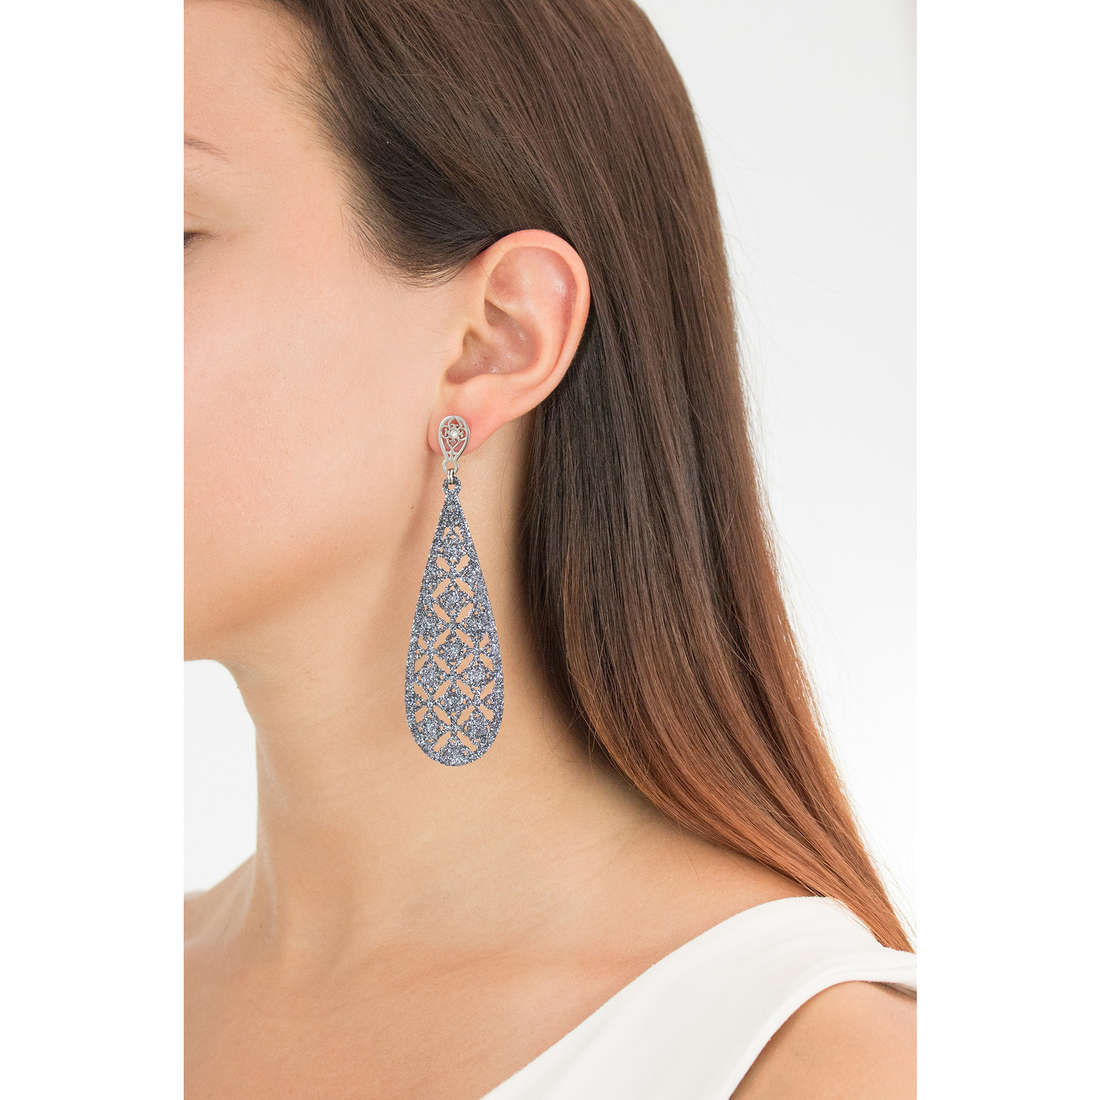 Luca Barra boucles d'oreille Peggy femme LBOK701 photo wearing